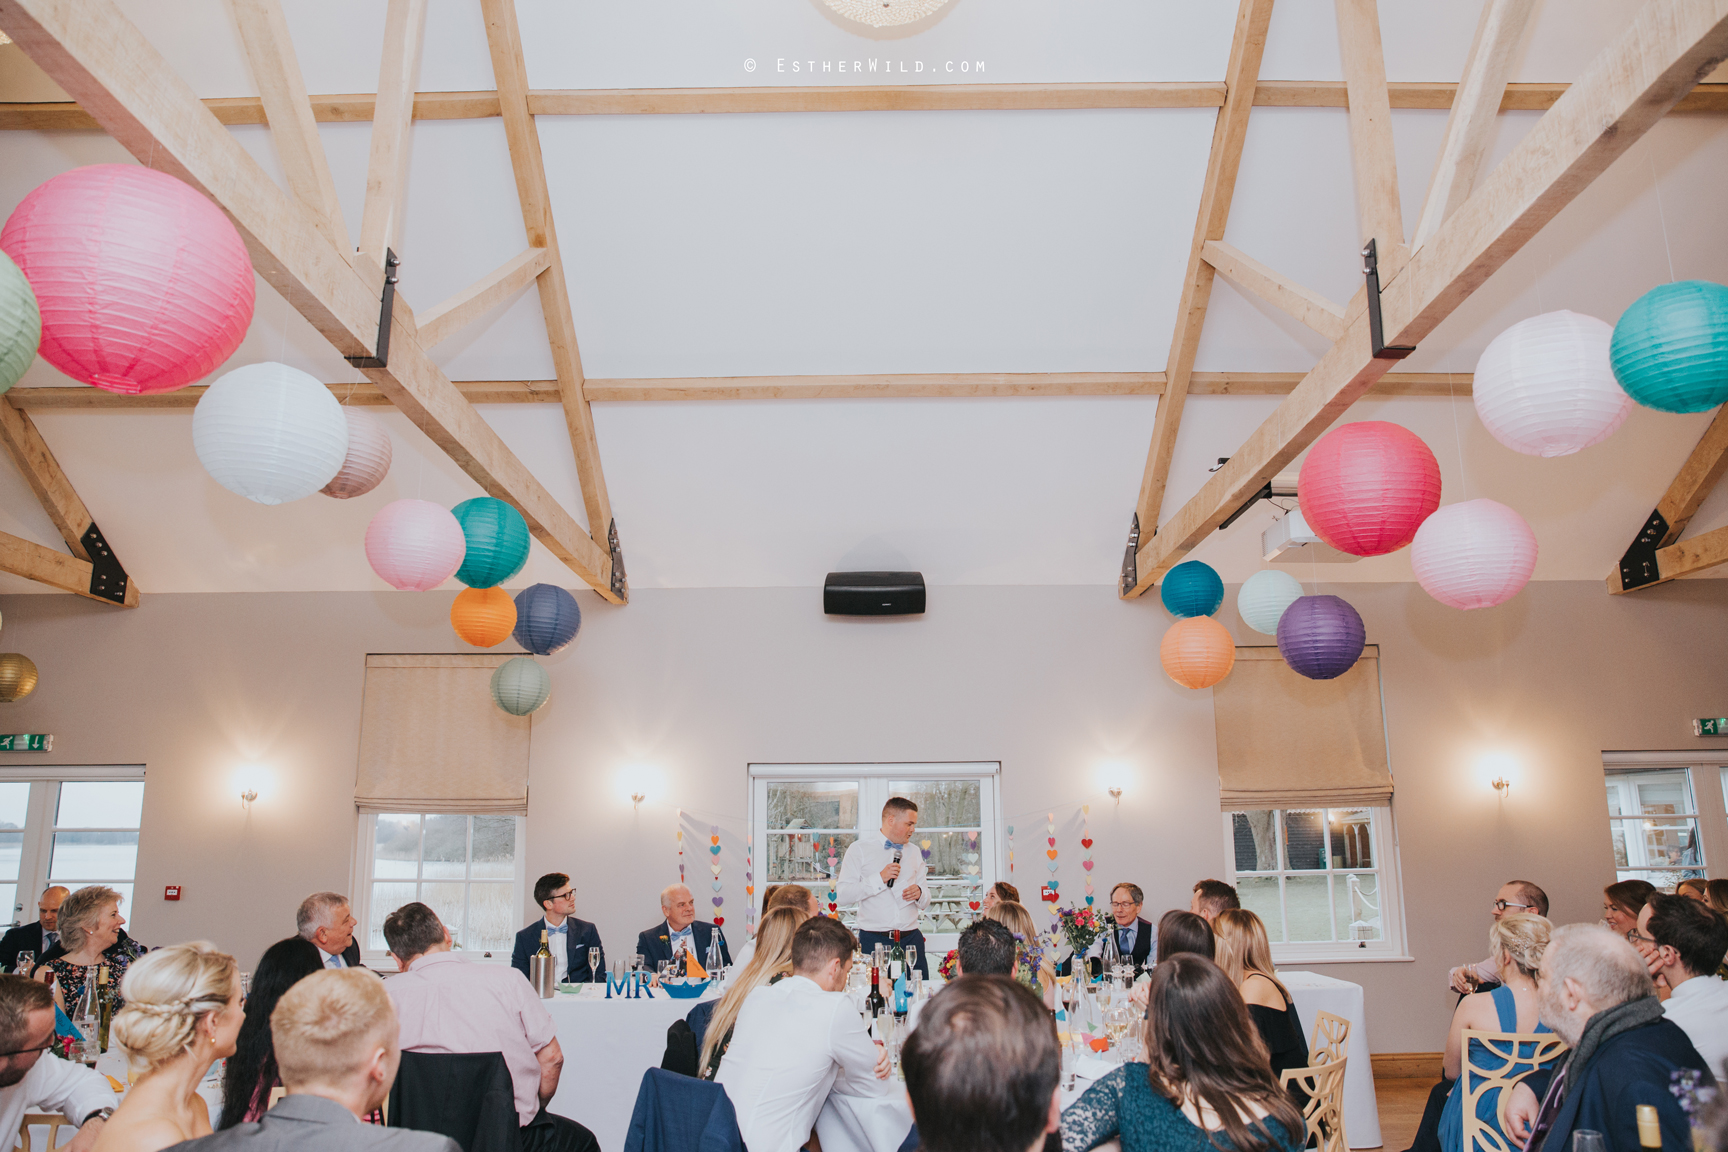 The_BoatHouse_Wedding_Venue_Ormesby_Norfolk_Broads_Boat_Wedding_Photography_Esther_Wild_Photographer_IMG_3114.jpg